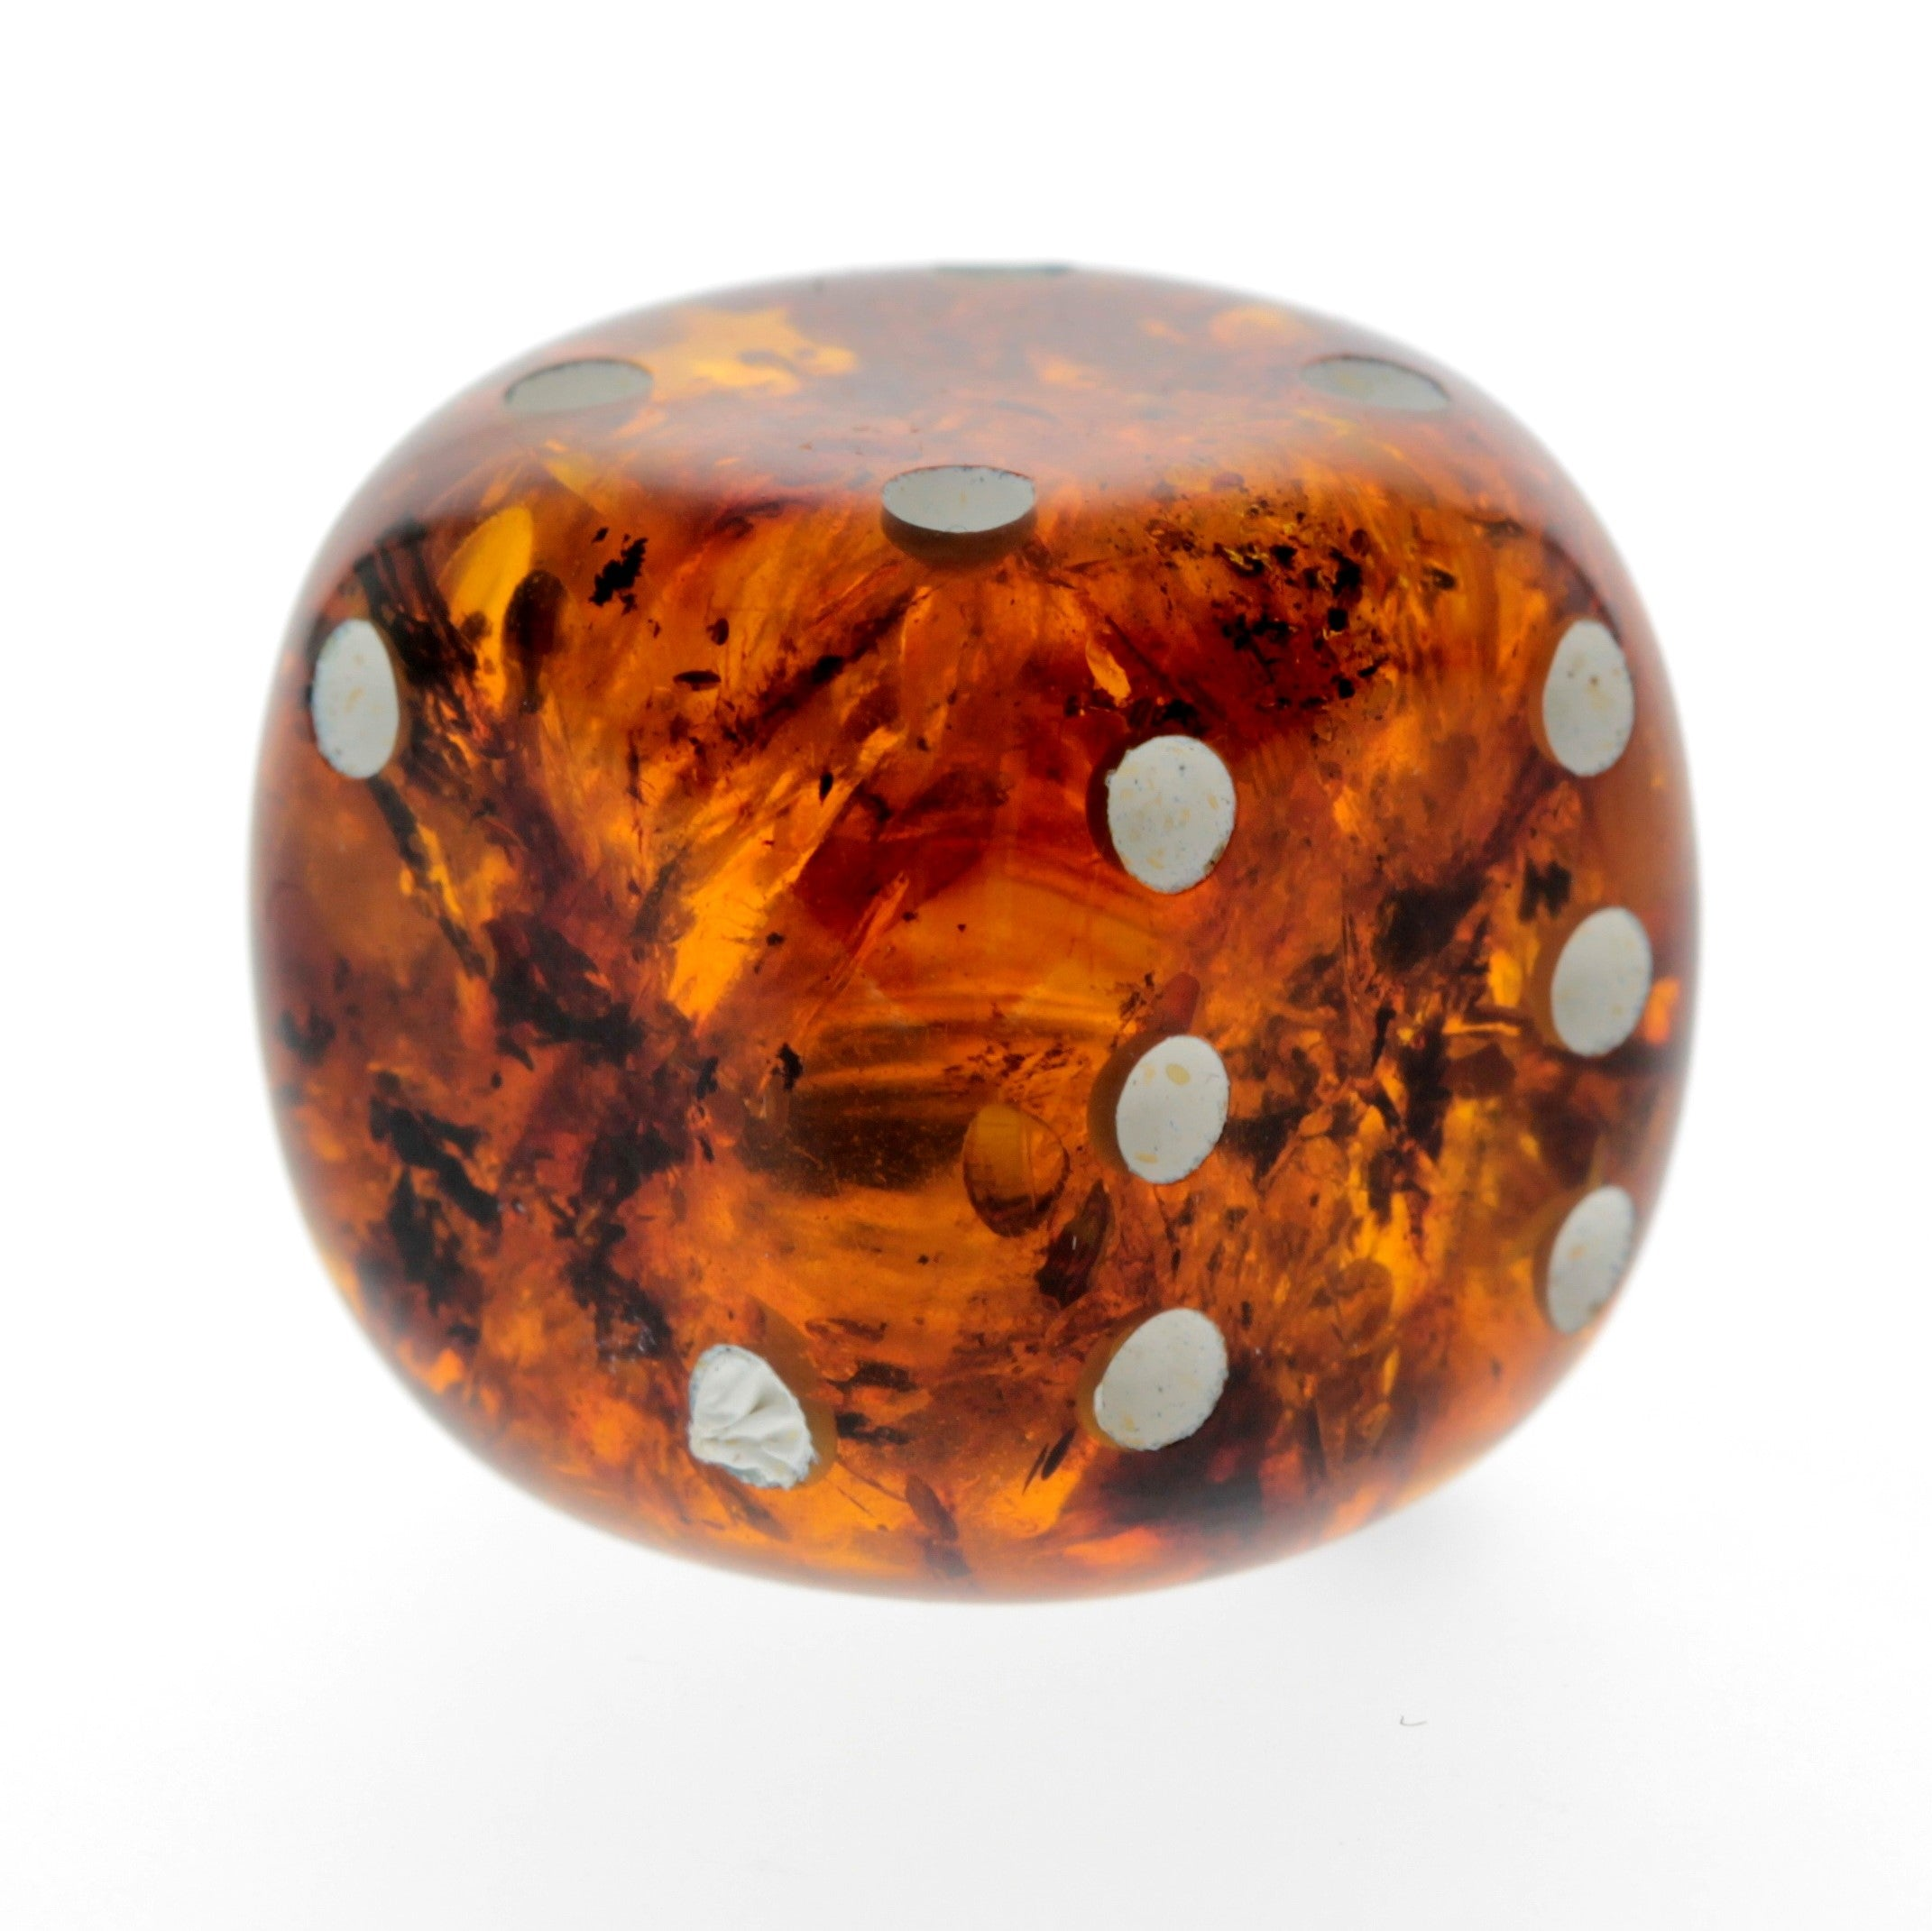 Genuine Baltic Amber Handmade Carving - Cube Dice with rounded corners - Ideal Men Gift